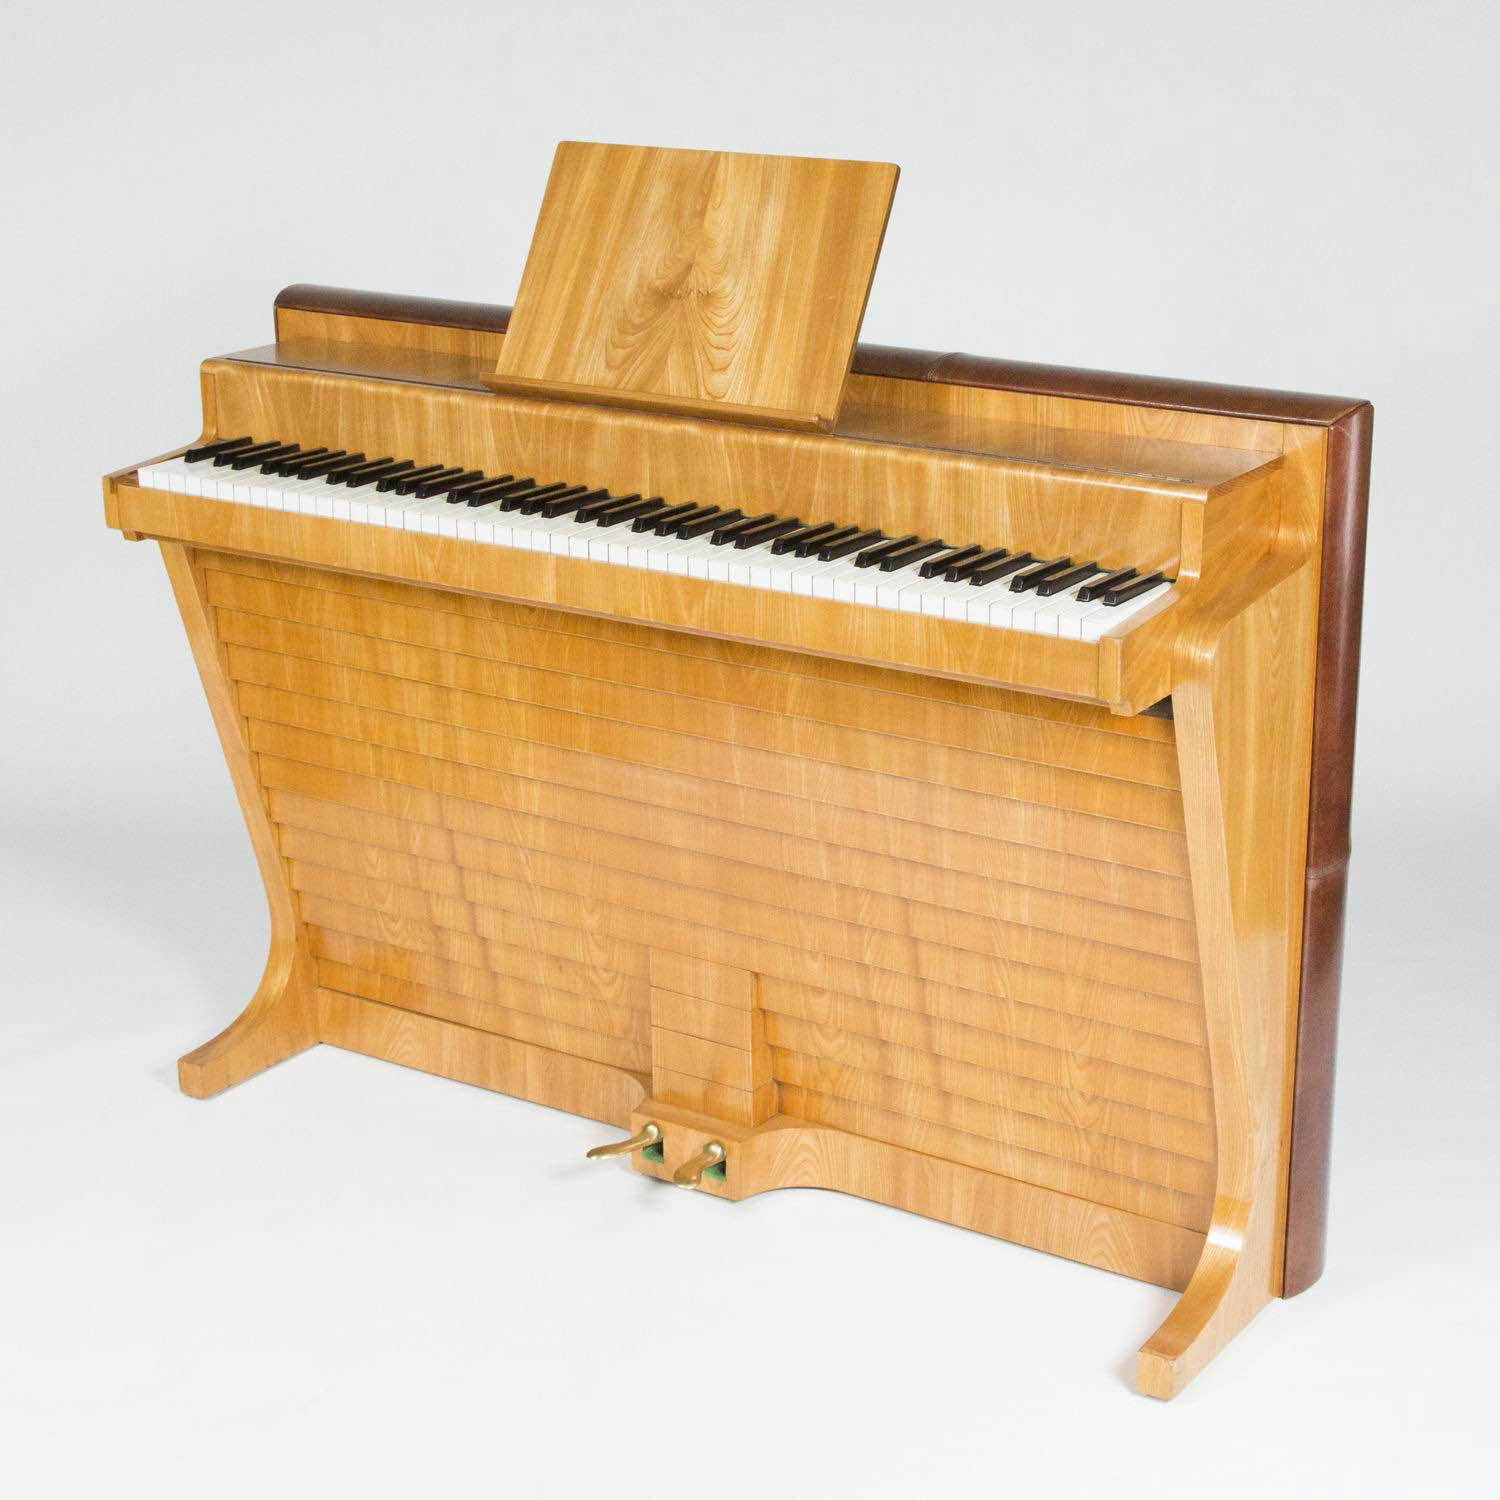 ELM PH PIANO BY ANDREAS CHRISTENSEN